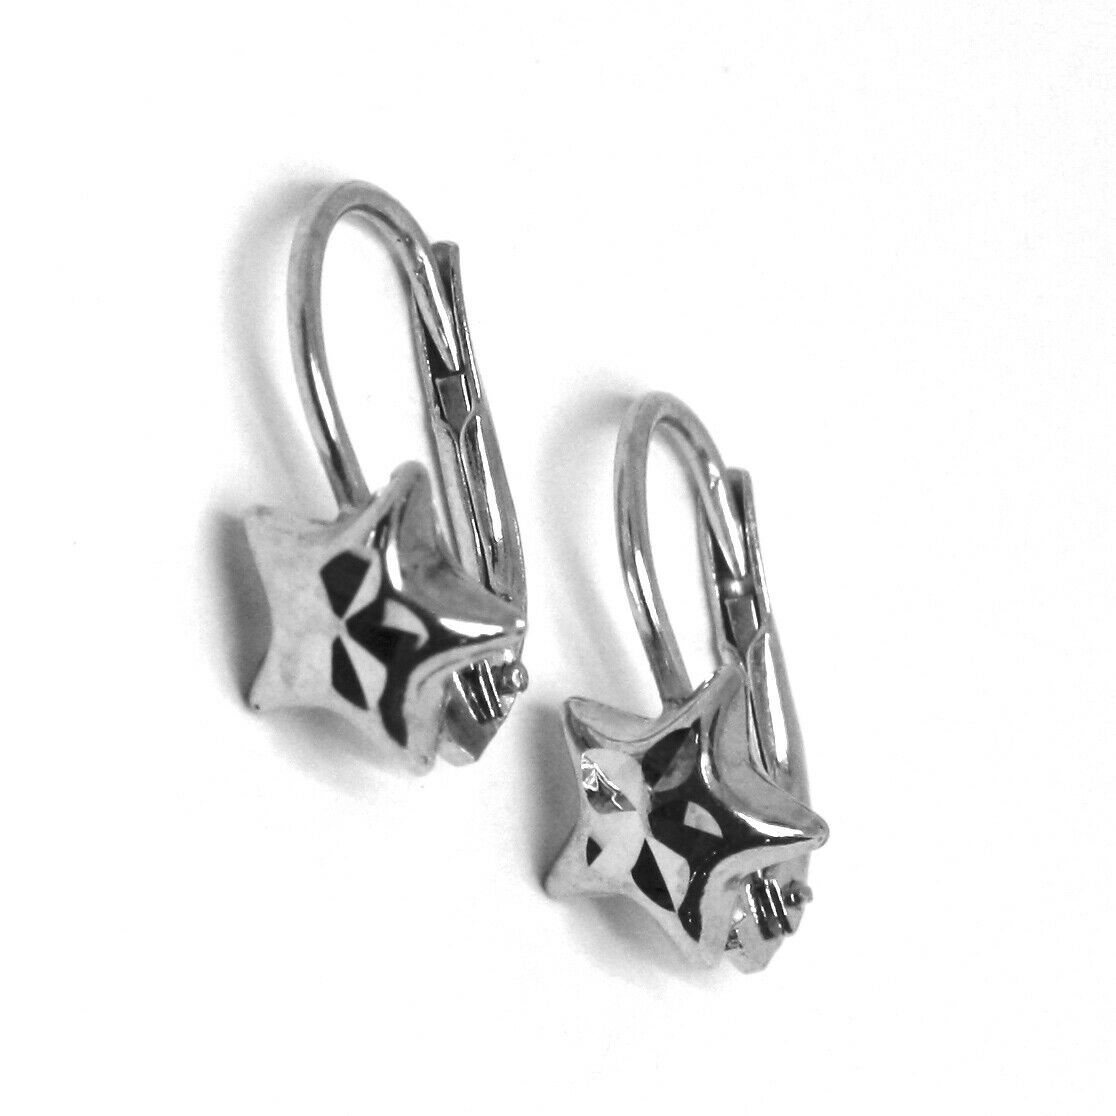 18K WHITE GOLD KIDS EARRINGS, HAMMERED STAR, LEVERBACK CLOSURE, ITALY MADE